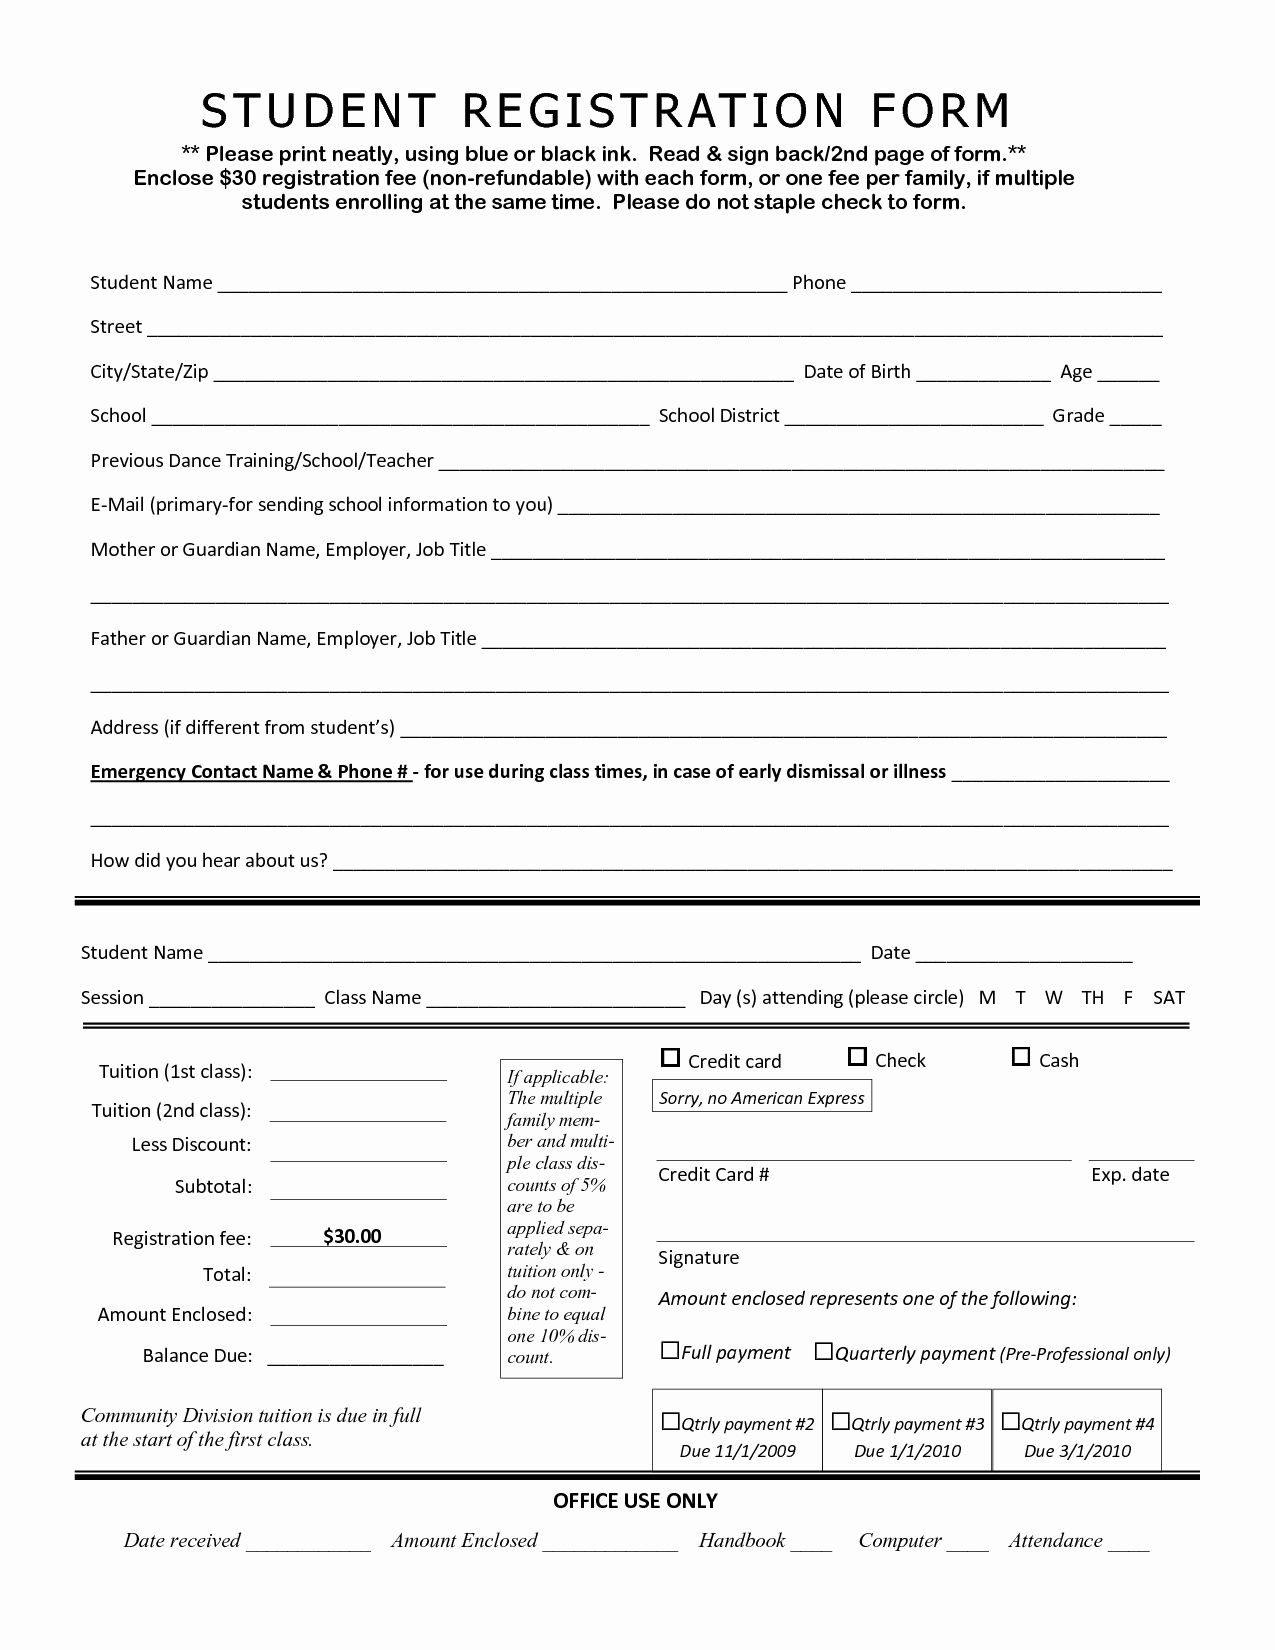 School Registration forms Template New Student Application form Template Portablegasgrillweber